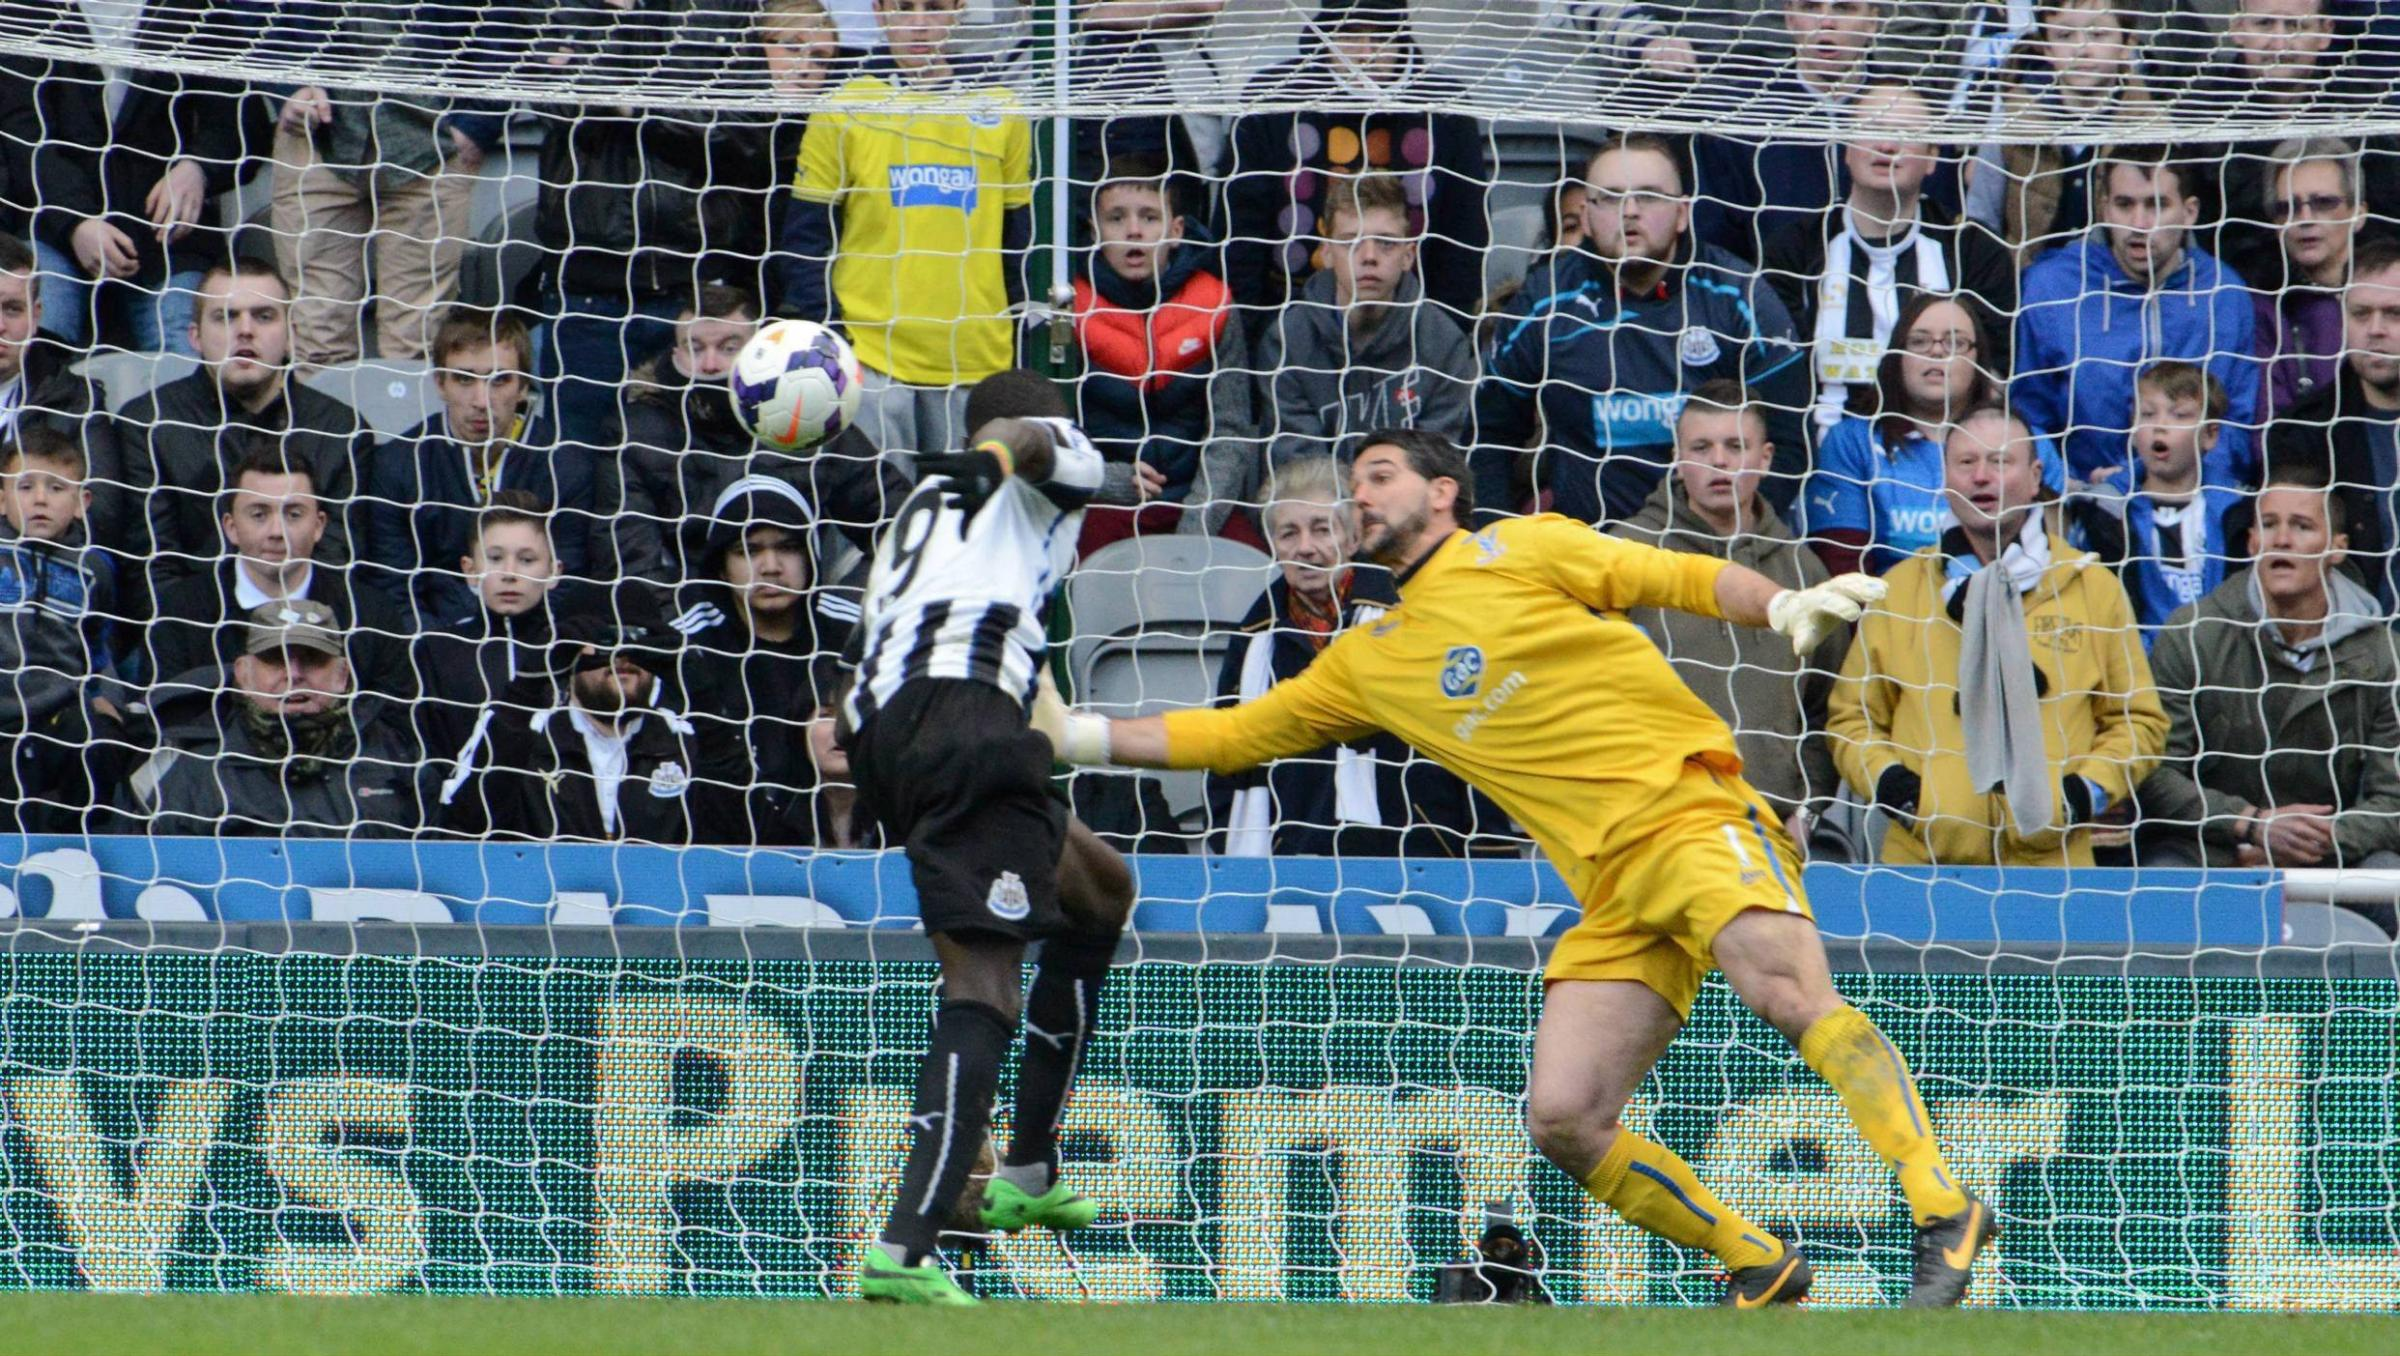 DECISIVE STRIKE: Papiss Cisse leaps to head Newcastle's late winner against Crystal Palace